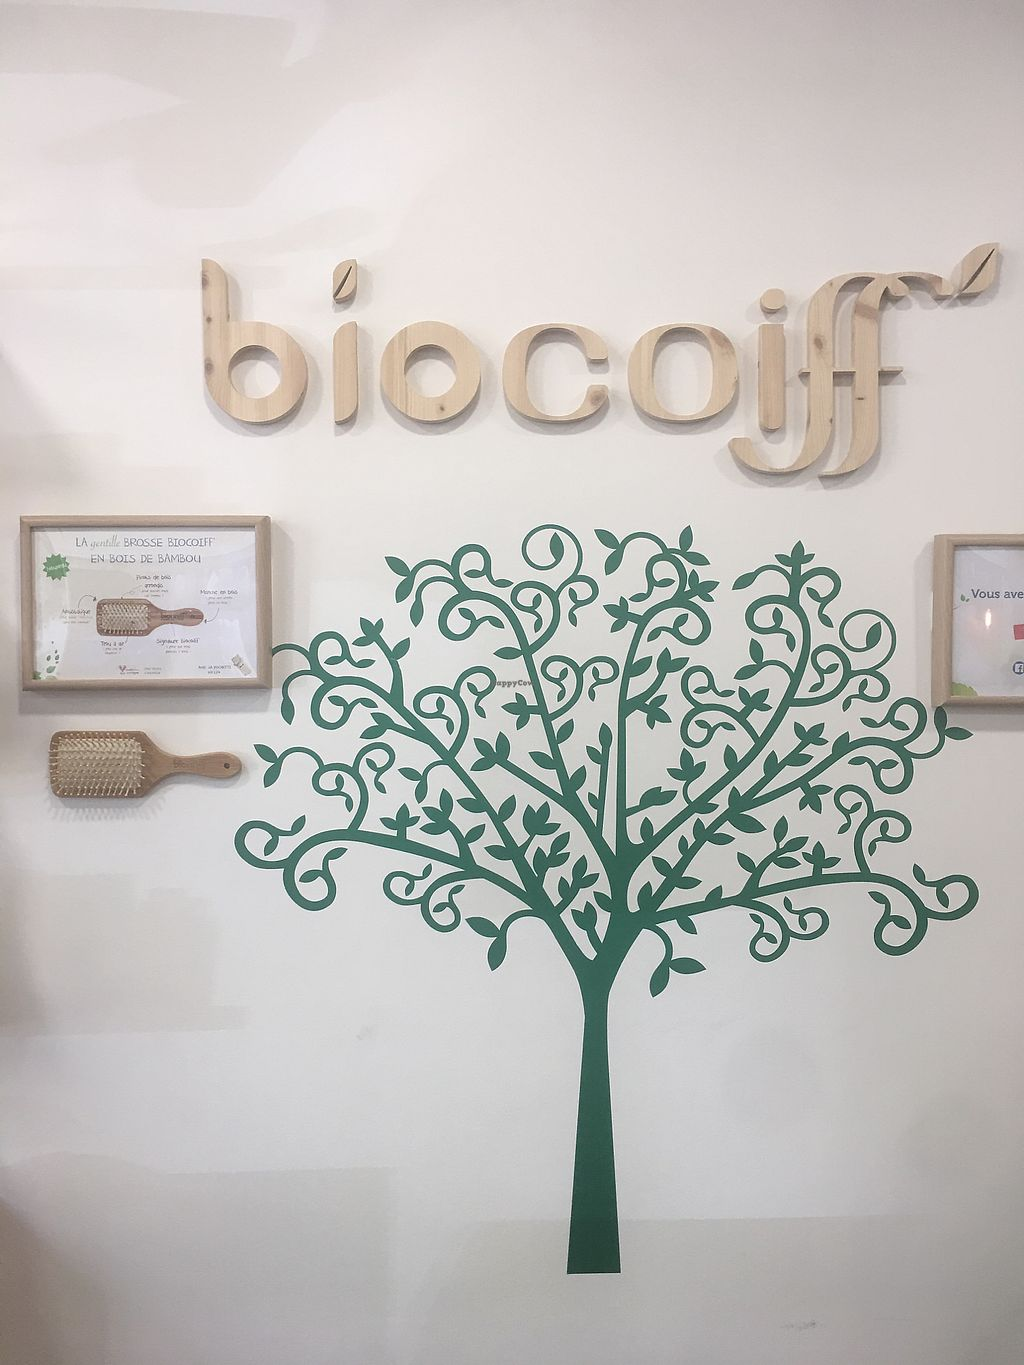 """Photo of Biocoiff- Paris 4   by <a href=""""/members/profile/Sarkel"""">Sarkel</a> <br/>Behind reception  <br/> September 19, 2017  - <a href='/contact/abuse/image/98238/306057'>Report</a>"""